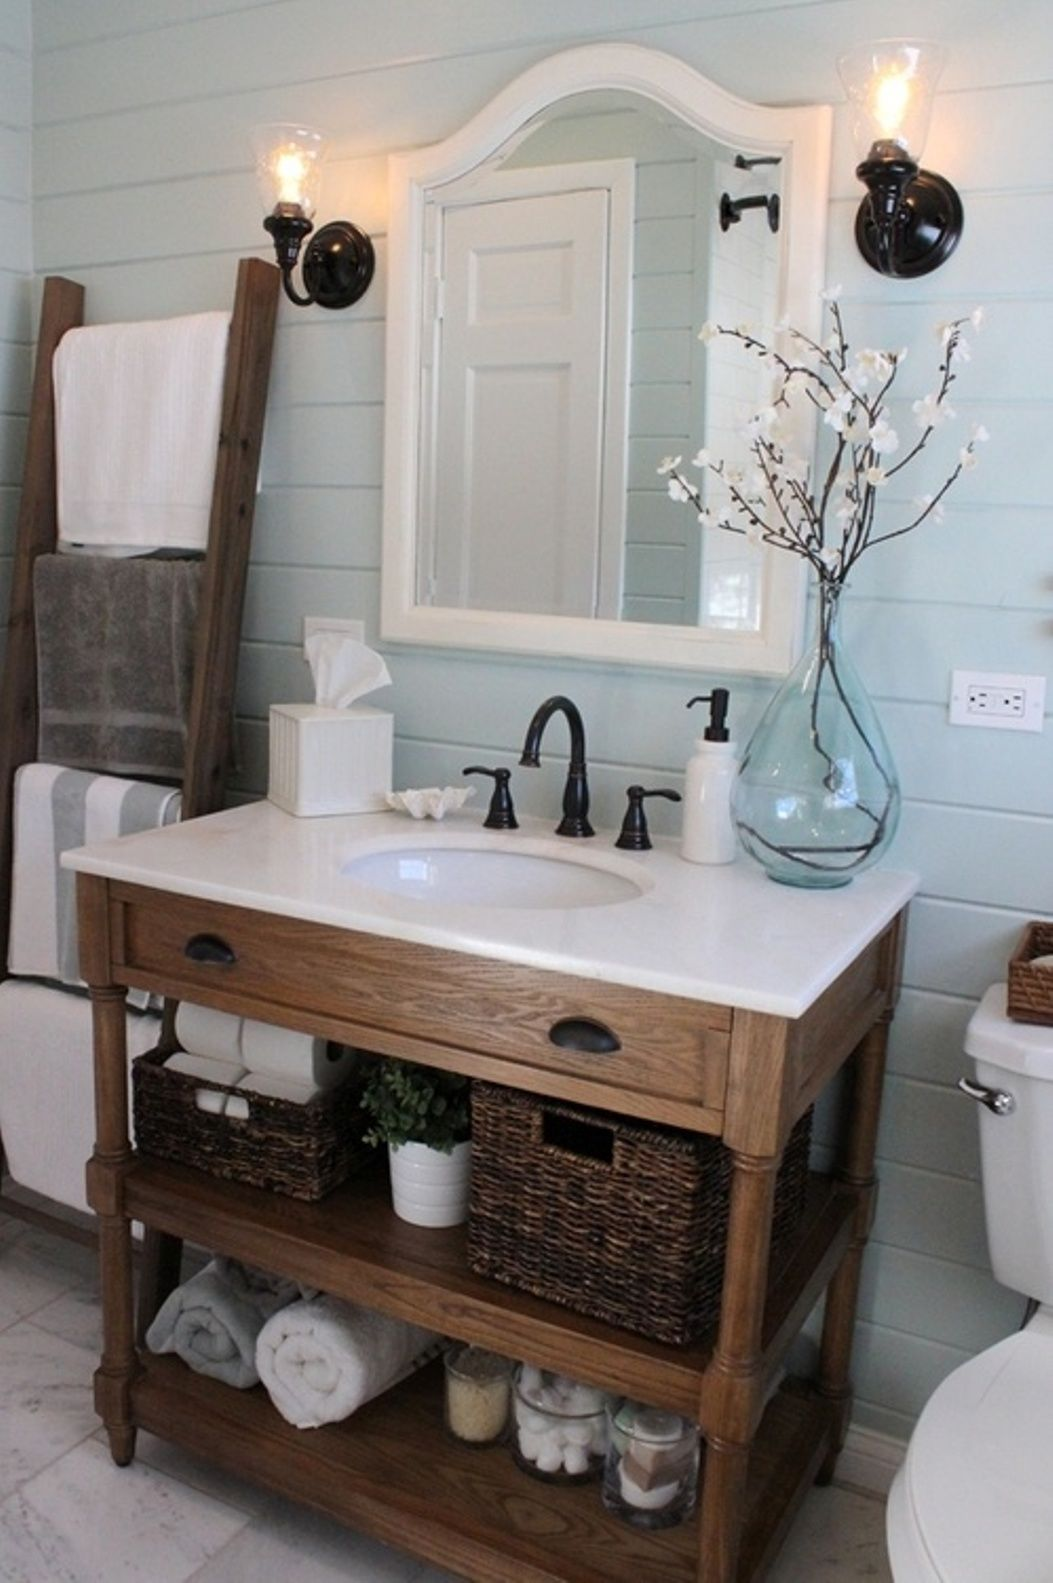 17 inspiring rustic bathroom decor ideas for cozy home for Bathroom decor lights